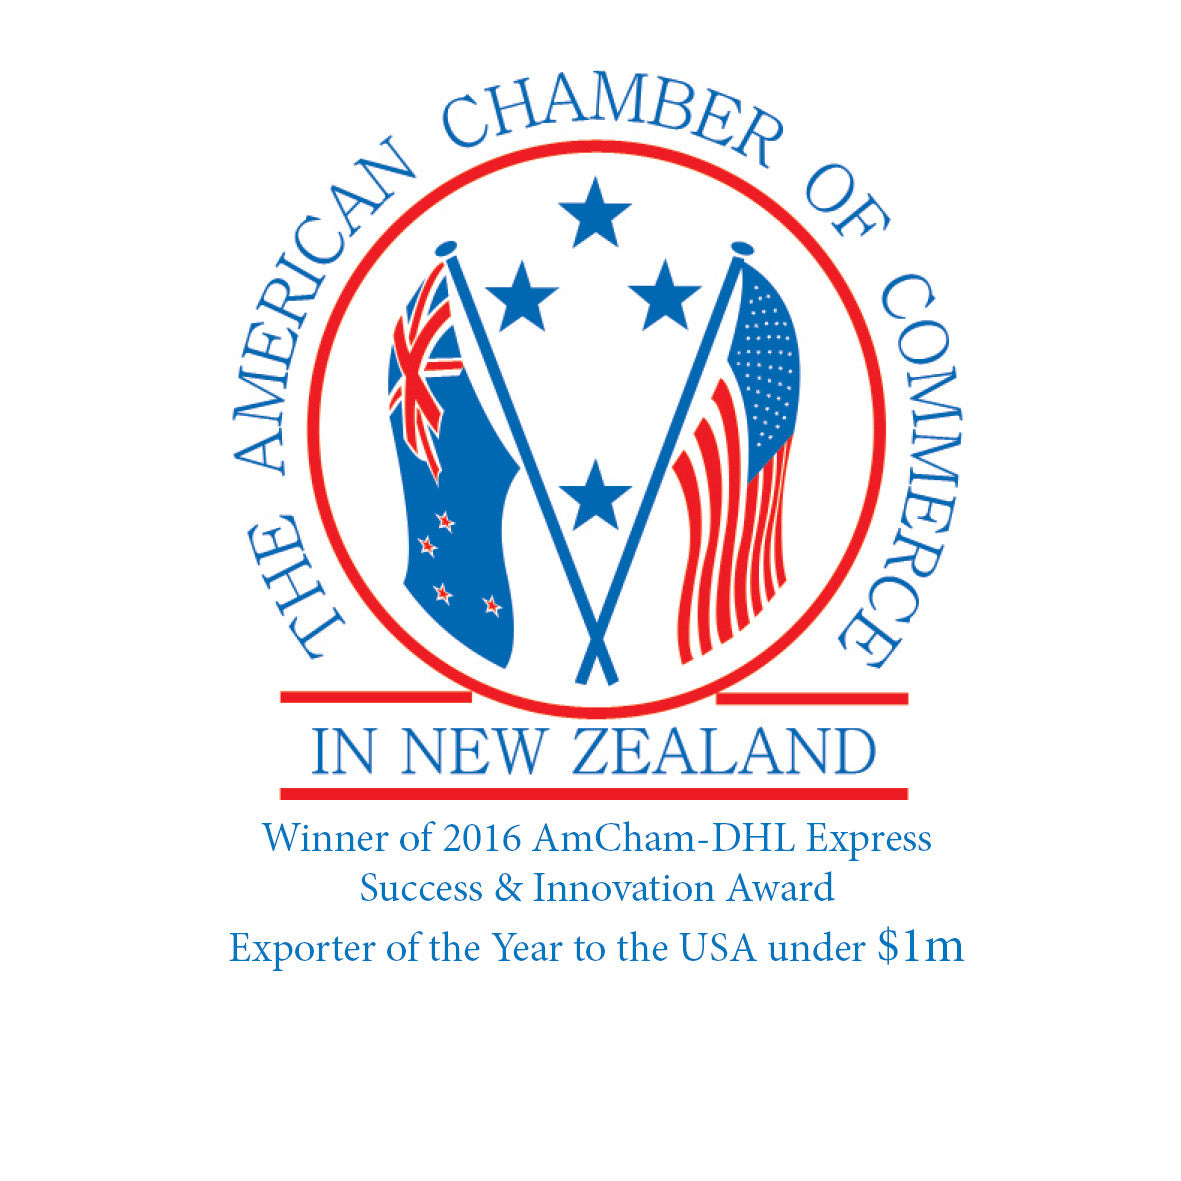 2016 AmCham Exporter of the Year